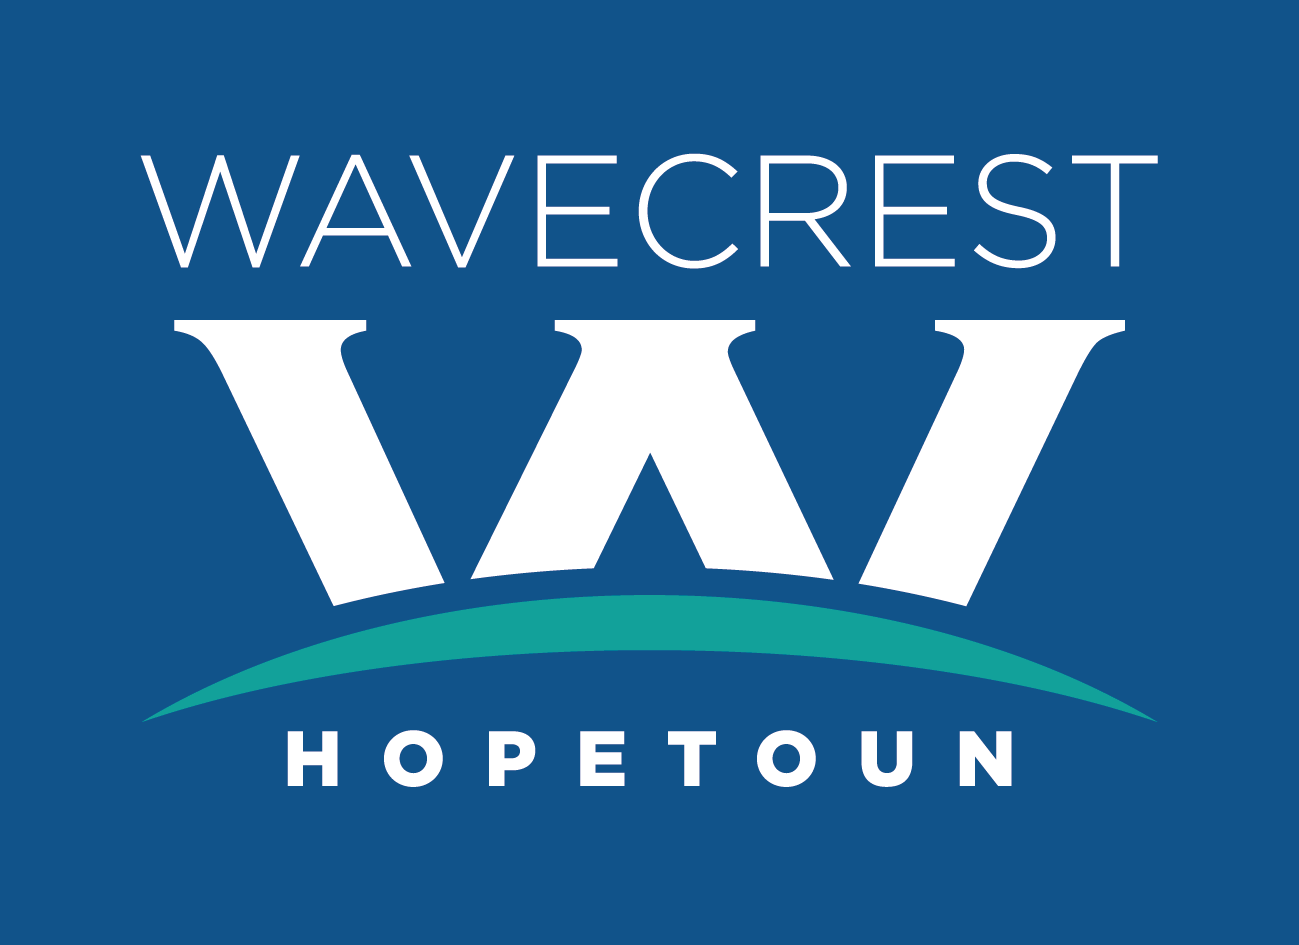 Wavecrest Village — Hopetoun Accommodation